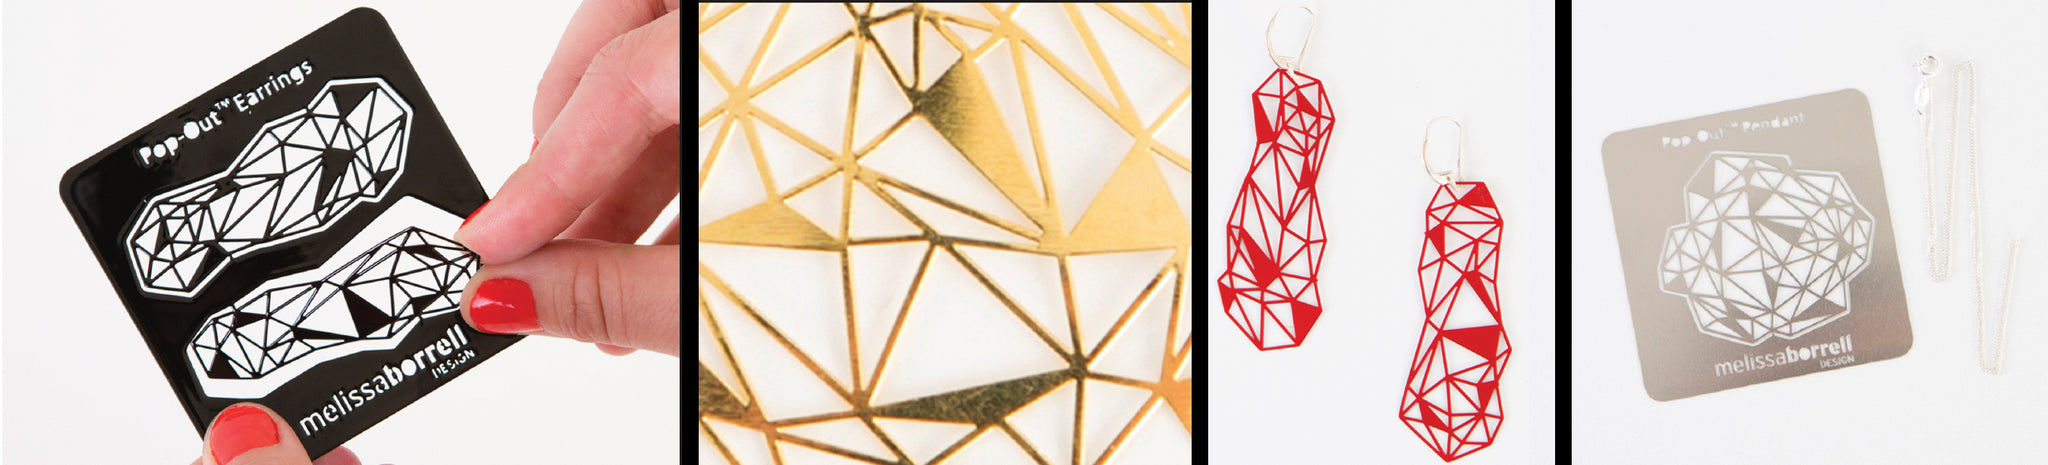 Four panel image. Crystal earrings card with two hands twisting the jewelry out. Close up of gold crystal jewelry. Crystal jewelry with hoops. Flat card geometric crystal pendant with chain.